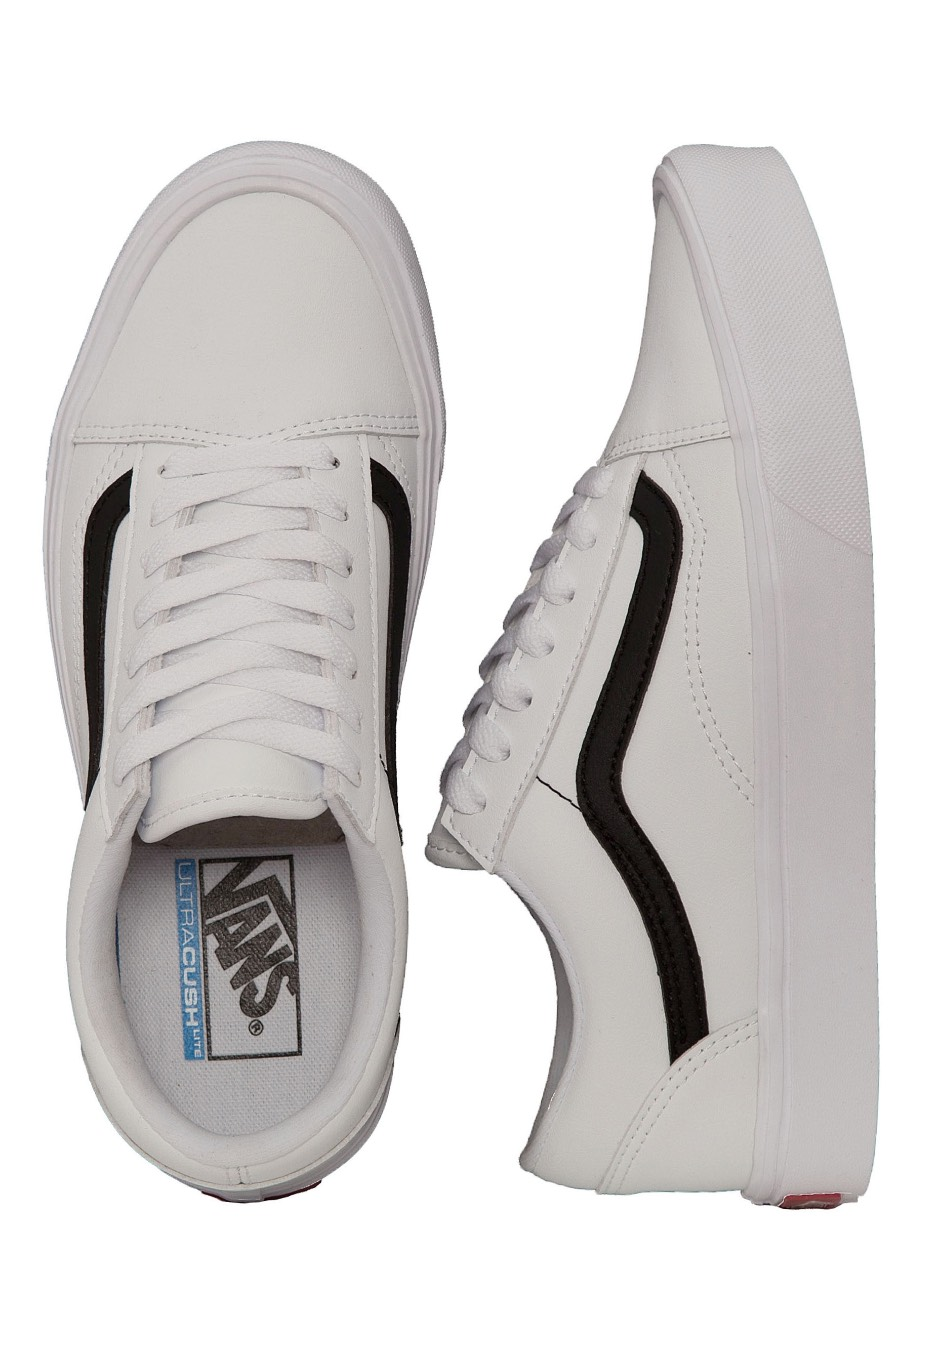 6c8c7cf90ce3 Vans - Old Skool Lite Classic Tumble True White Black - Shoes -  Impericon.com Worldwide